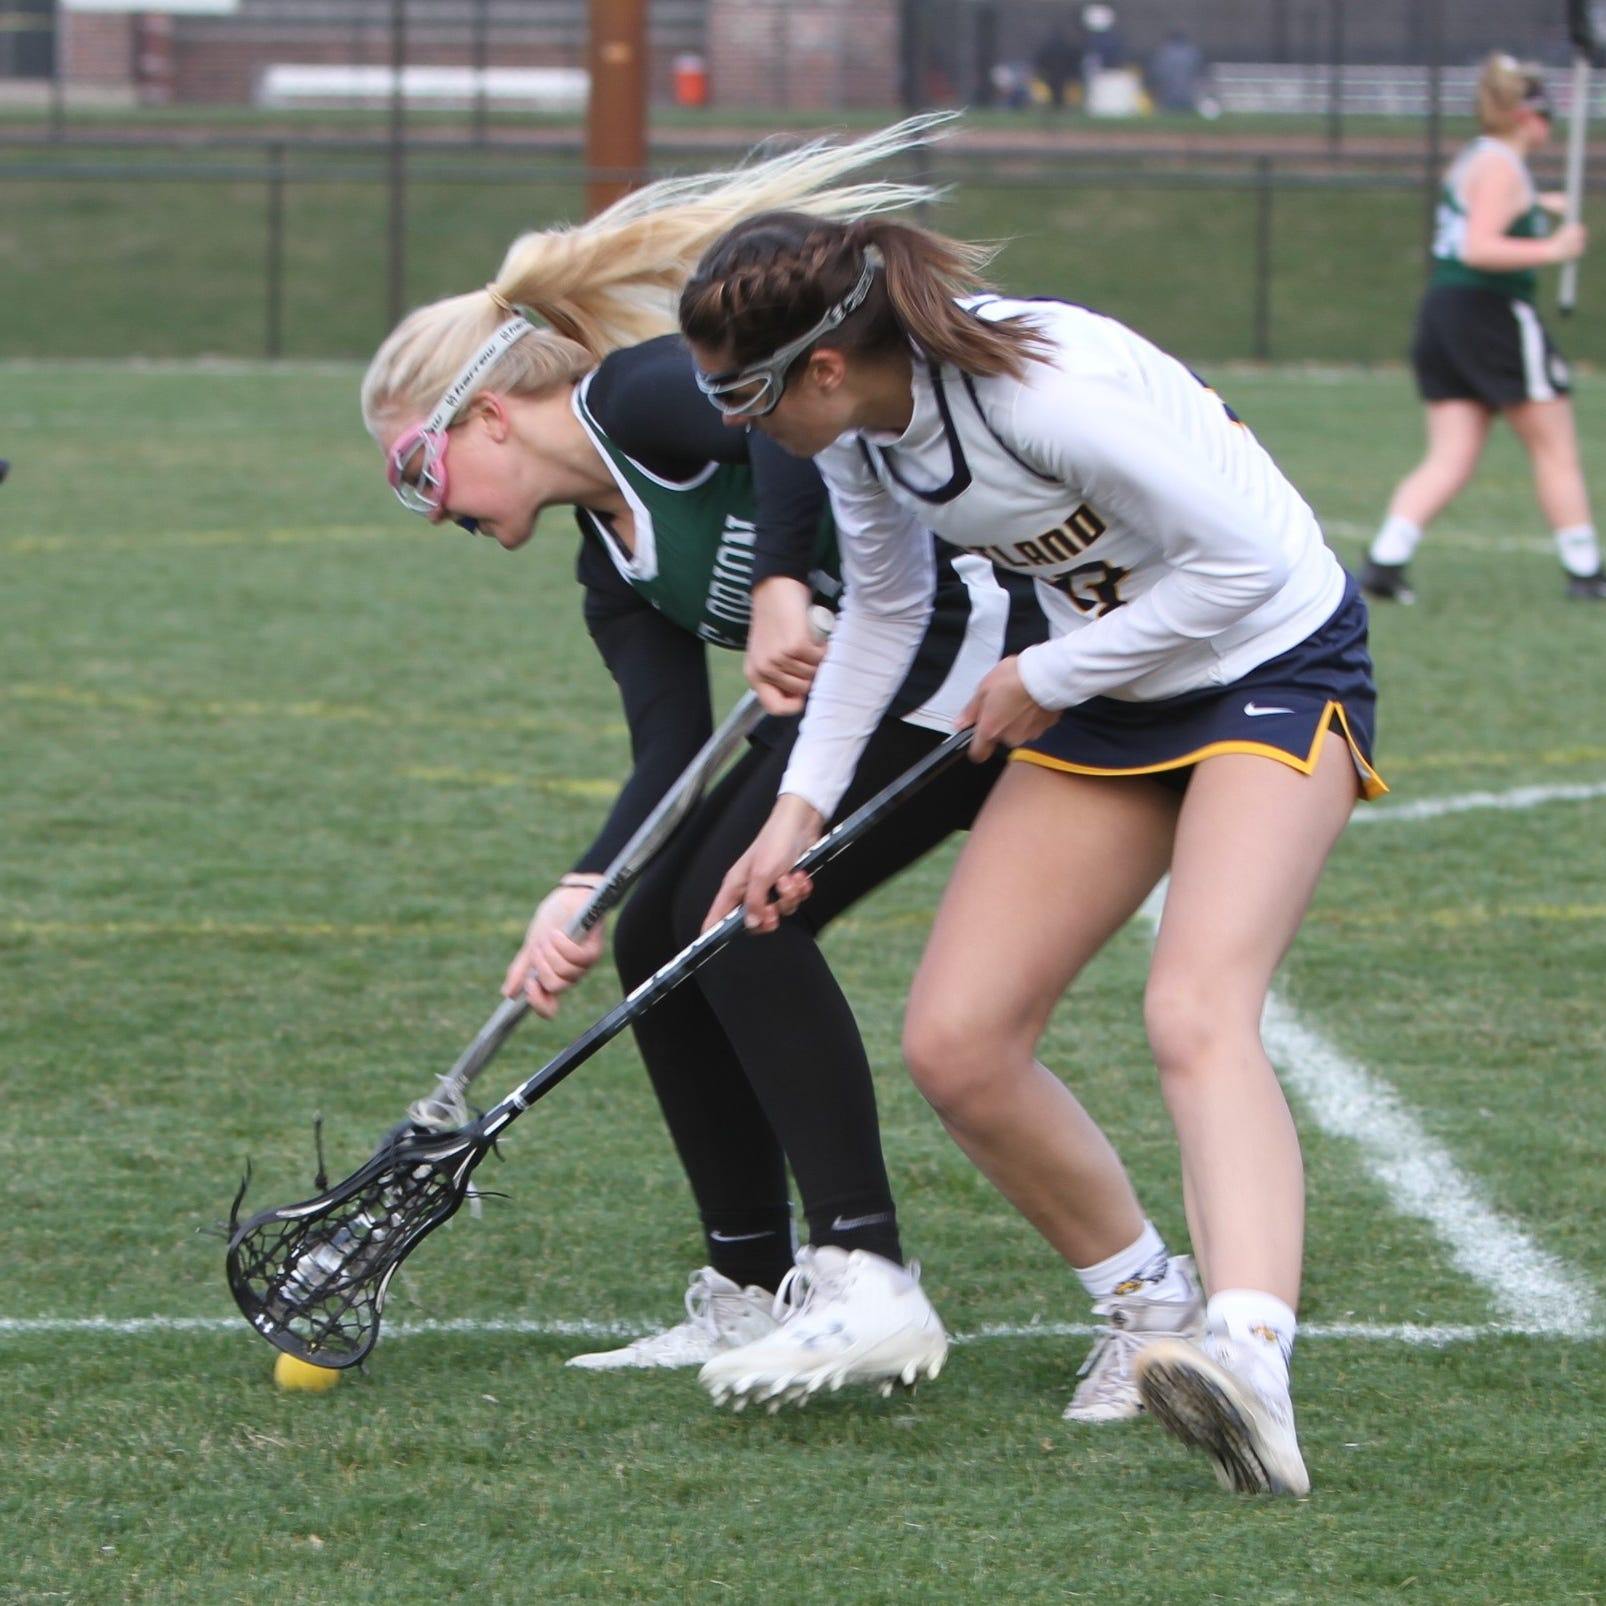 Hartland stays unbeaten in girls lacrosse